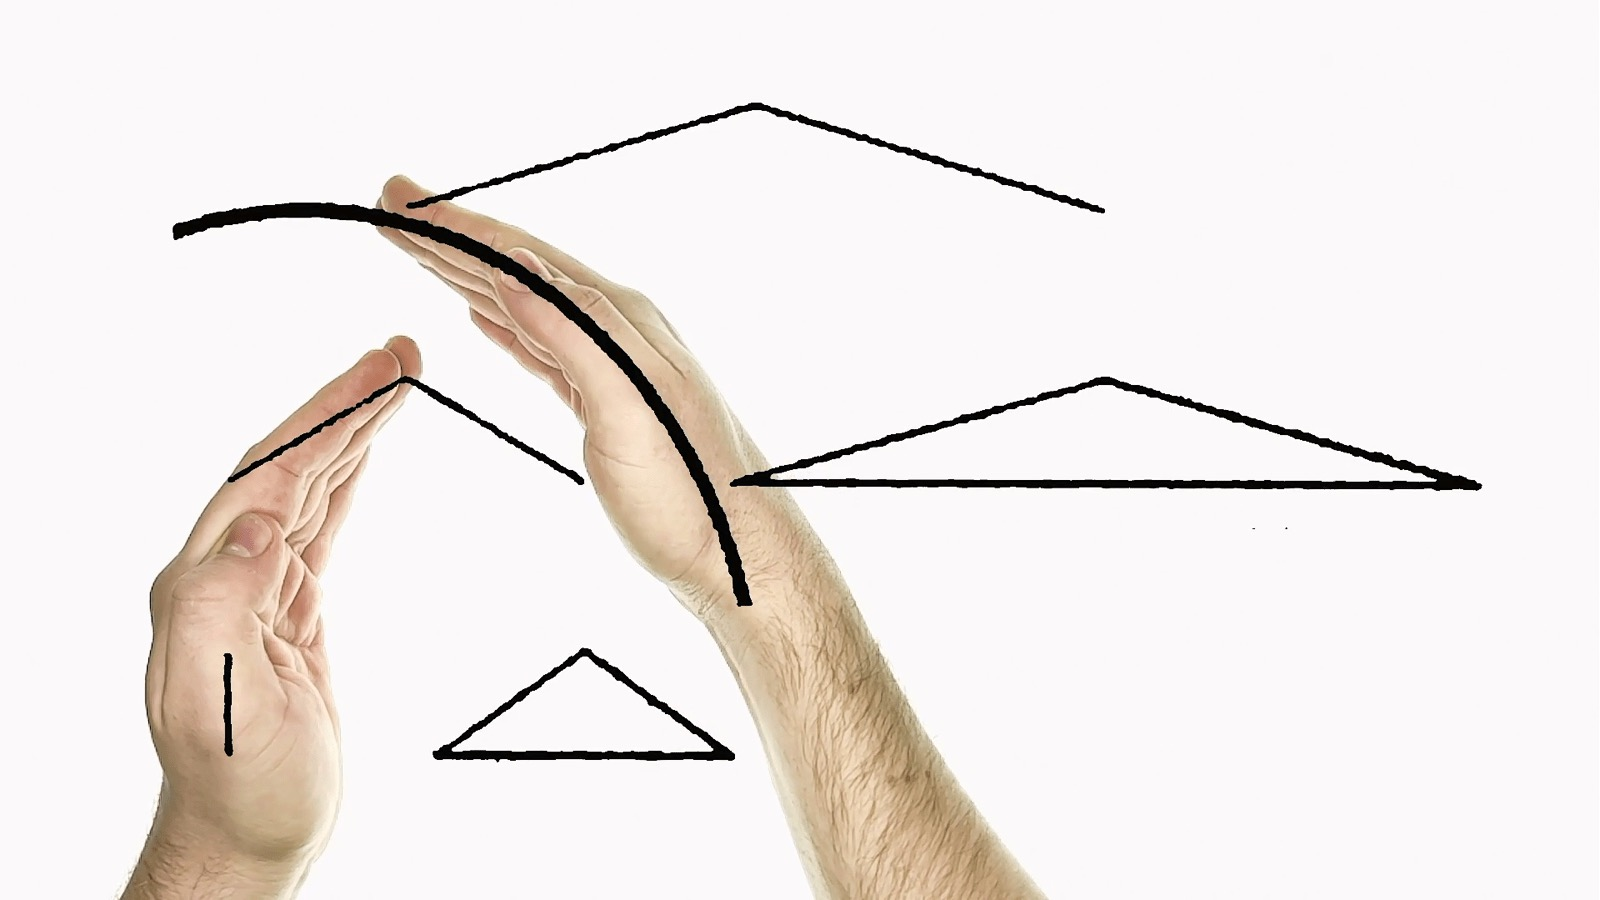 Two hands aligning themselves with an abstract diagram of lines and shapes.